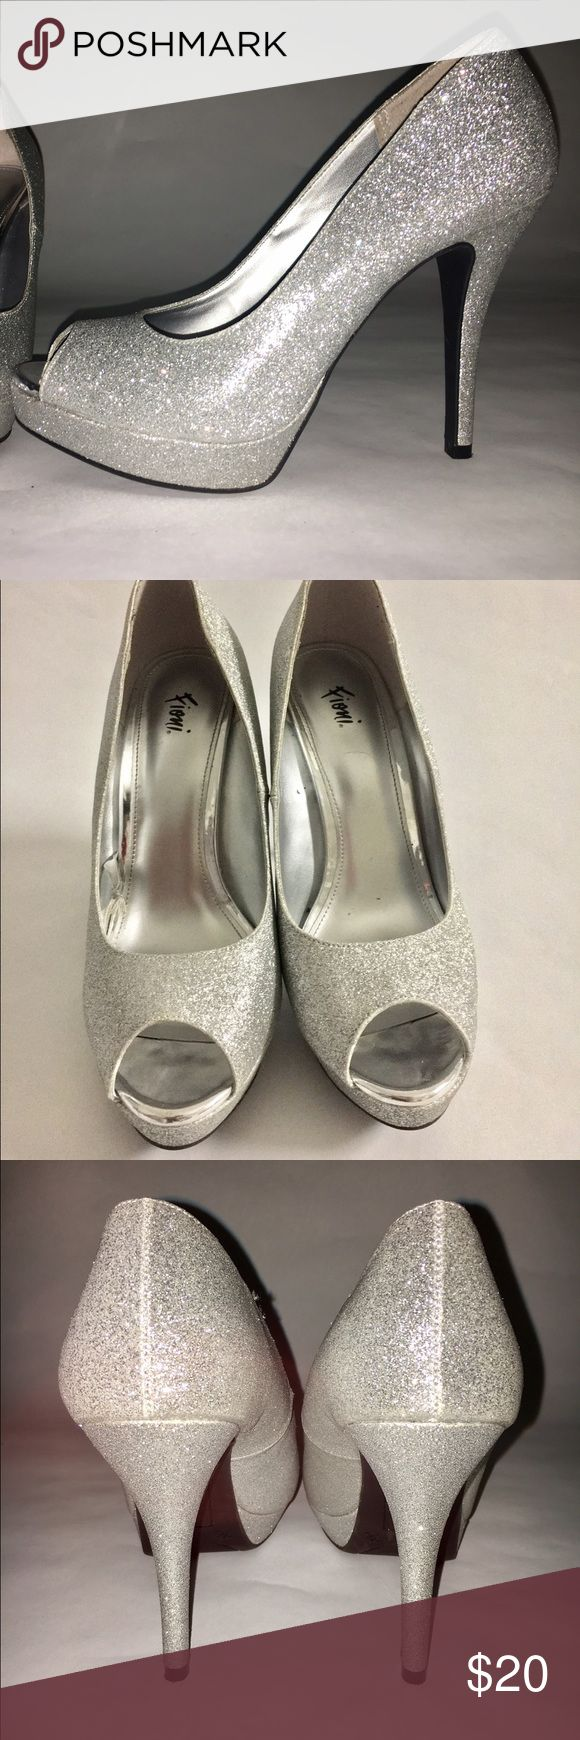 Silver Peep Toe Heels Worn once for a wedding. Gently used. Great shoes for a wedding or festive occasion like New Year's Eve party or a prom. Shoes Heels